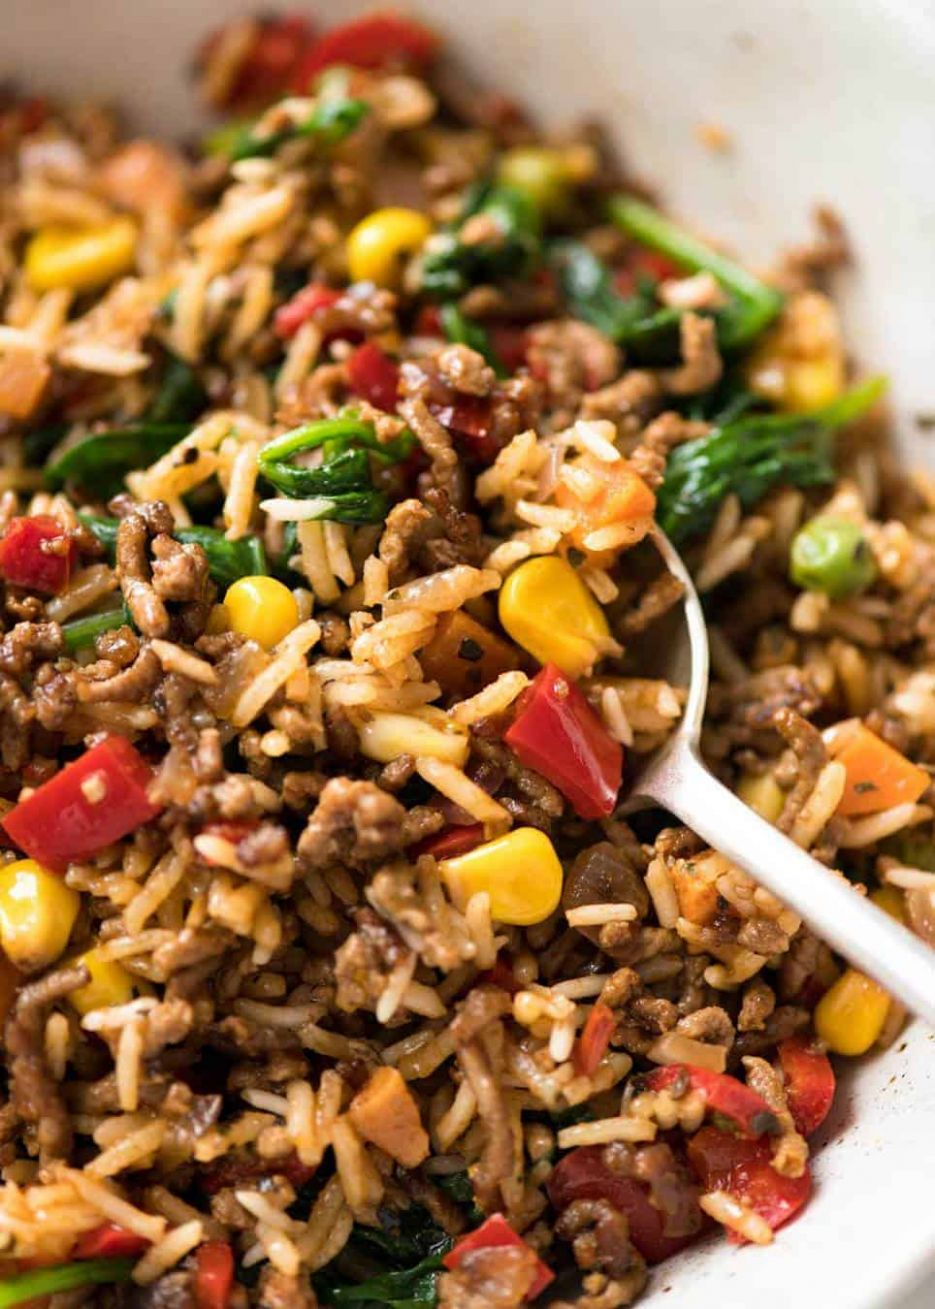 Beef and Rice with Veggies - Dinner Recipes Mince